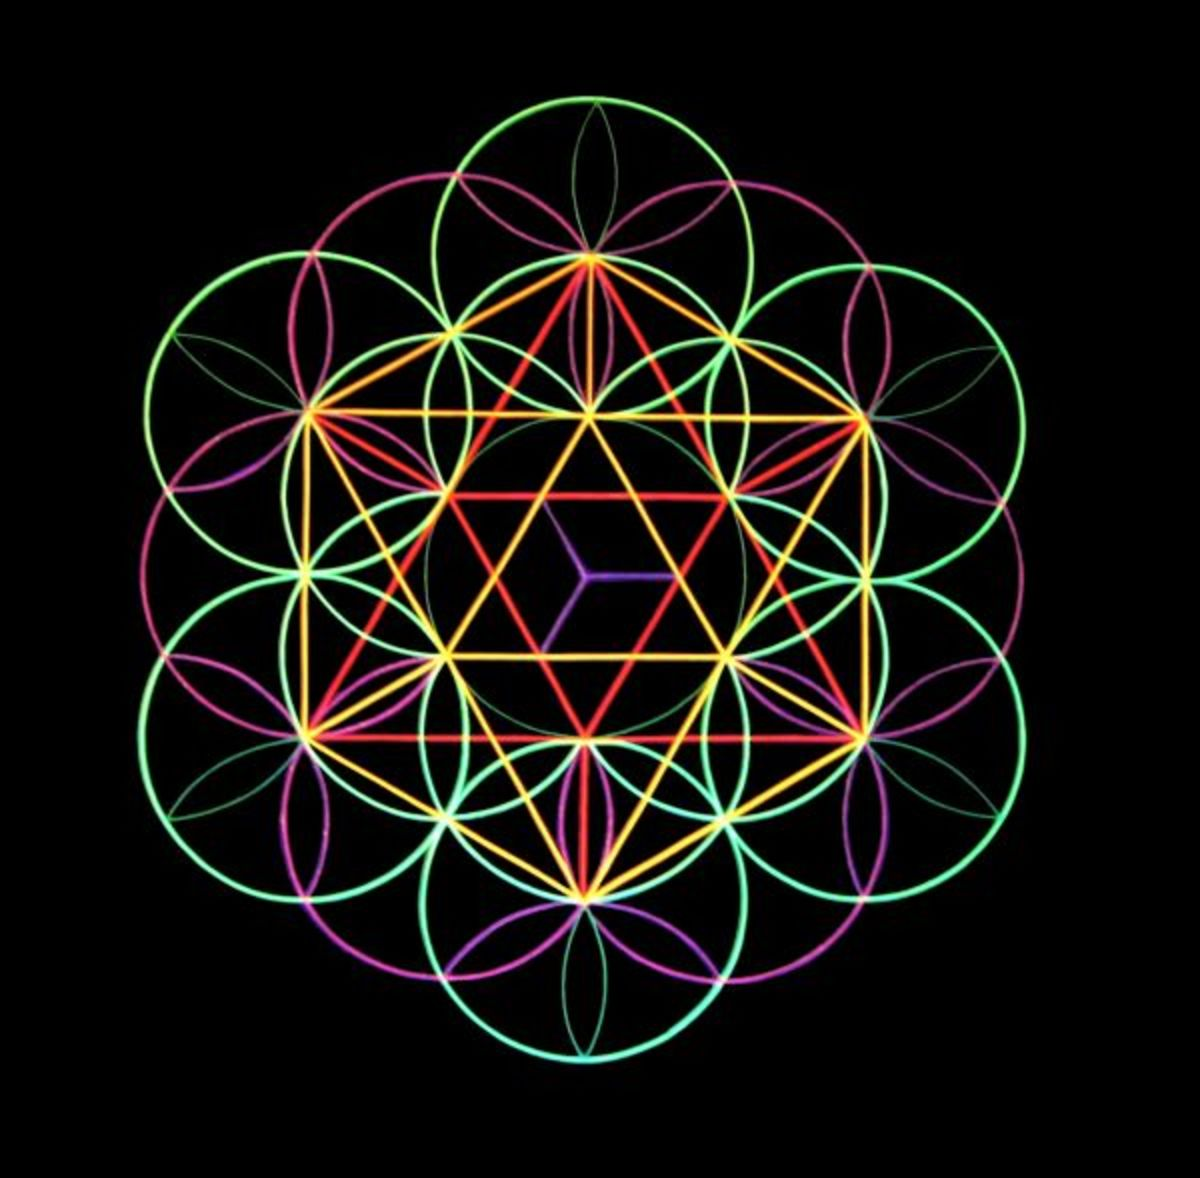 Using the Flower Of Life we can easily distinguish the Hexagon shape outlined from the Seed of Life contain within.